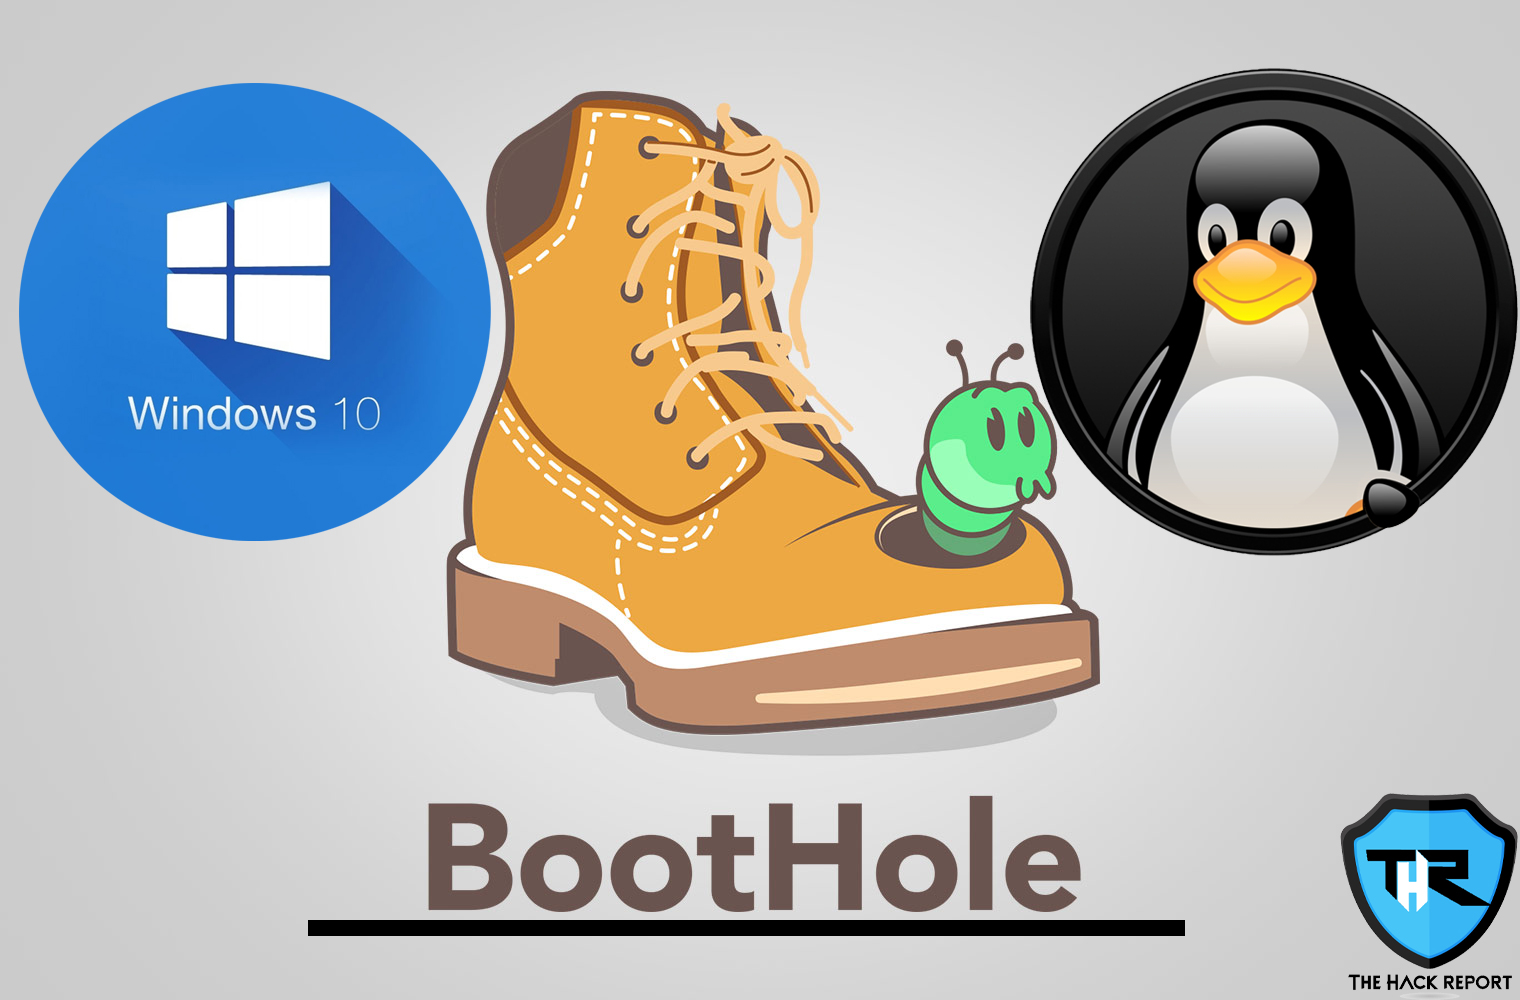 New Vulnerability 'Boothole' Threatens Billions of Linux, Windows Devices